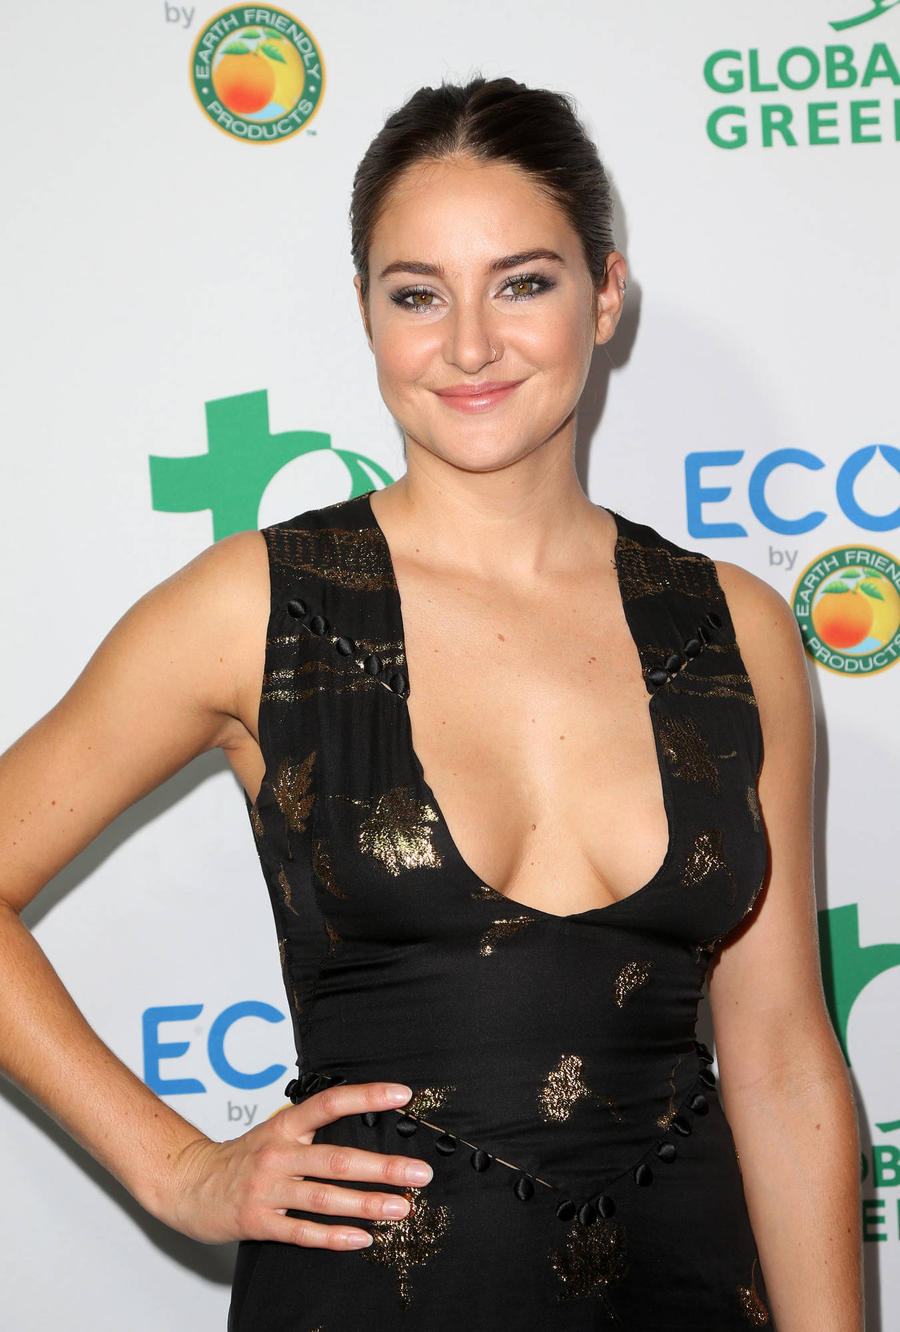 Shailene Woodley Offers Up Poetic Statement Following Arrest